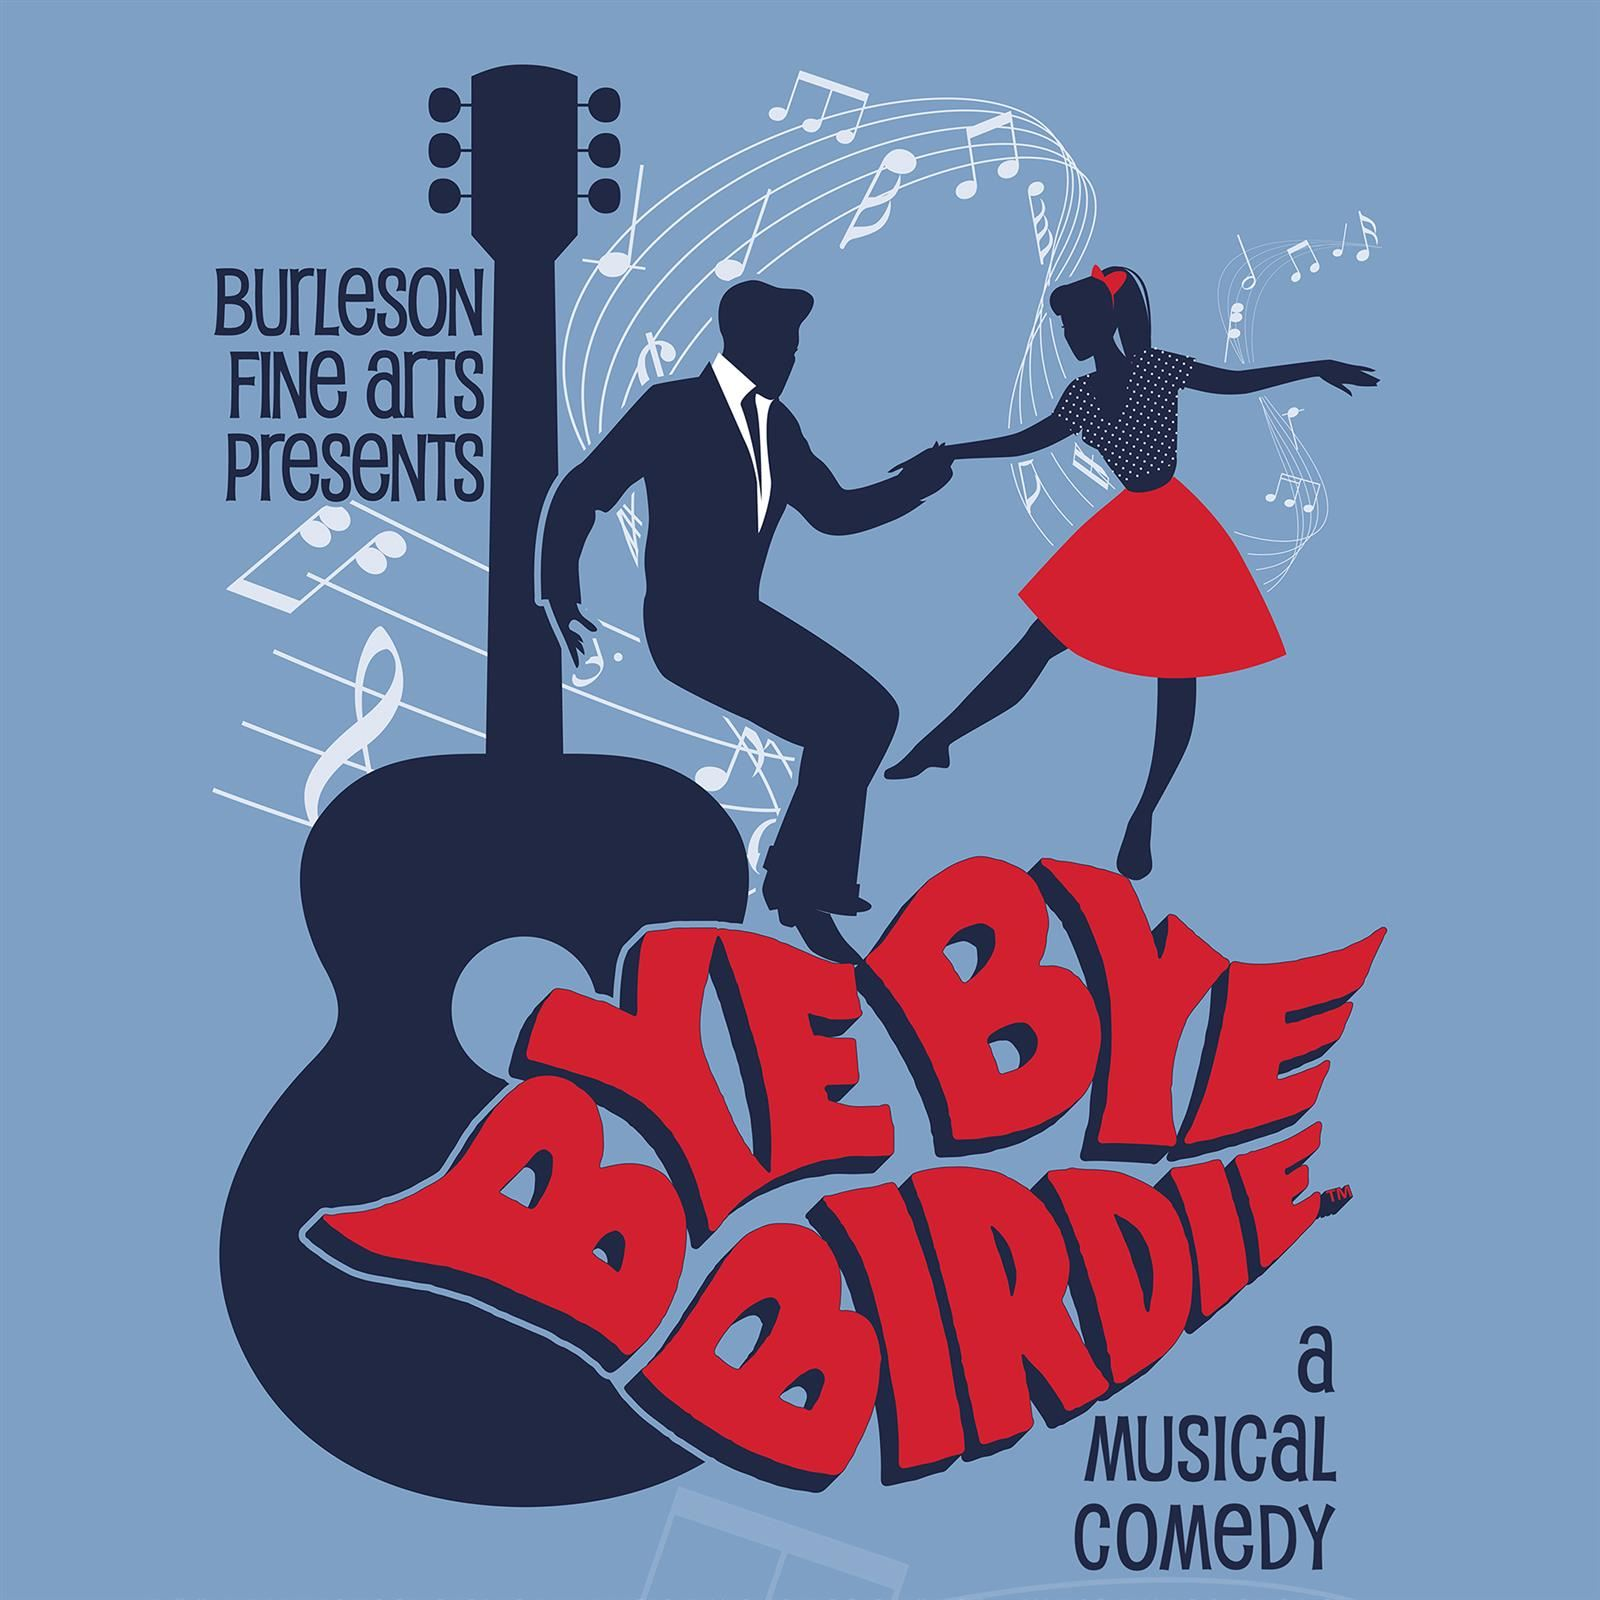 Partial Poster Image - Burleson Fine Arts Presents Bye Bye Birdie A Musical Comedy